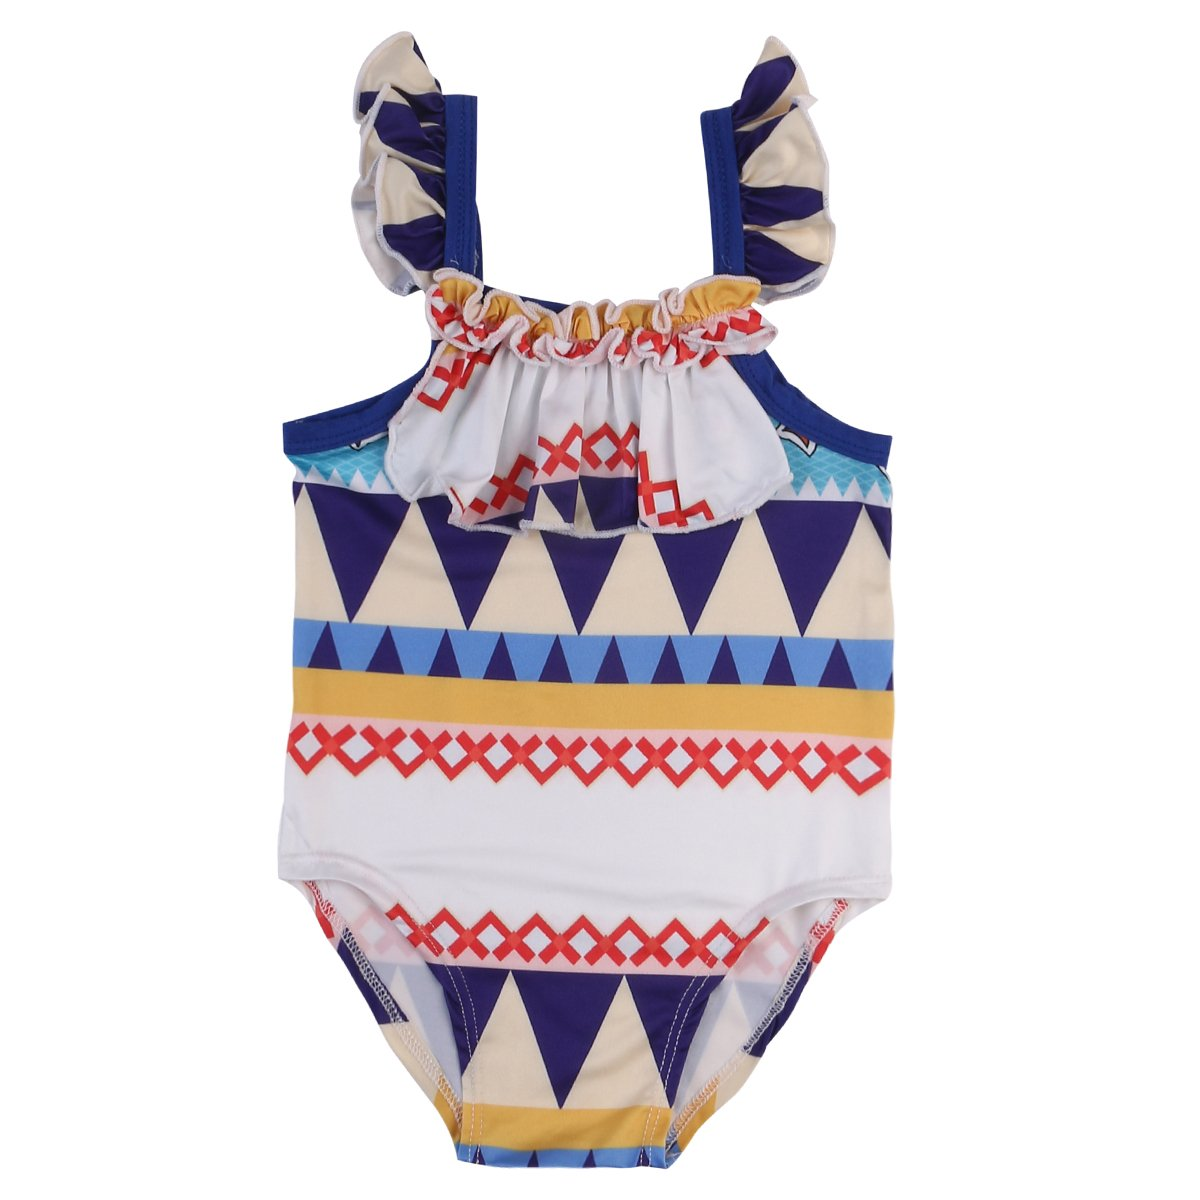 Zekky Baby Girls Swimwear One Piece Swimsuits Beach Wear